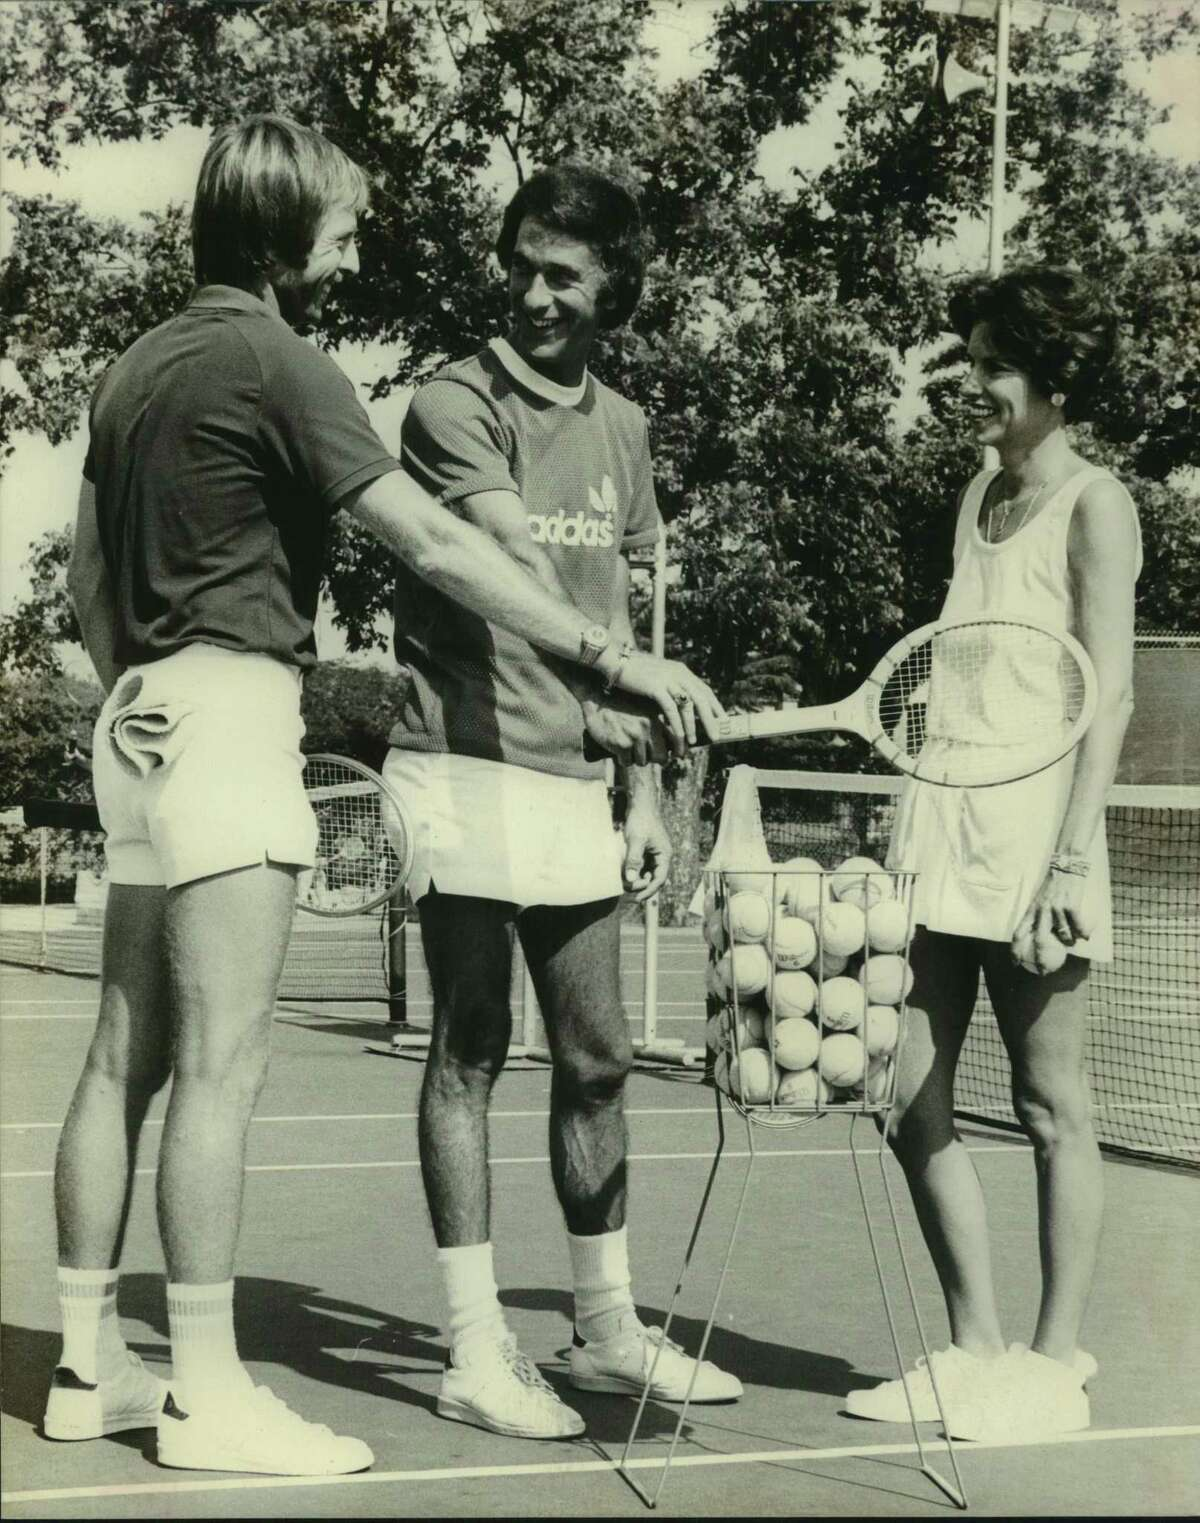 Paul Venema, center, chats with other tennis players during a celebrity tournament in this undated photo.